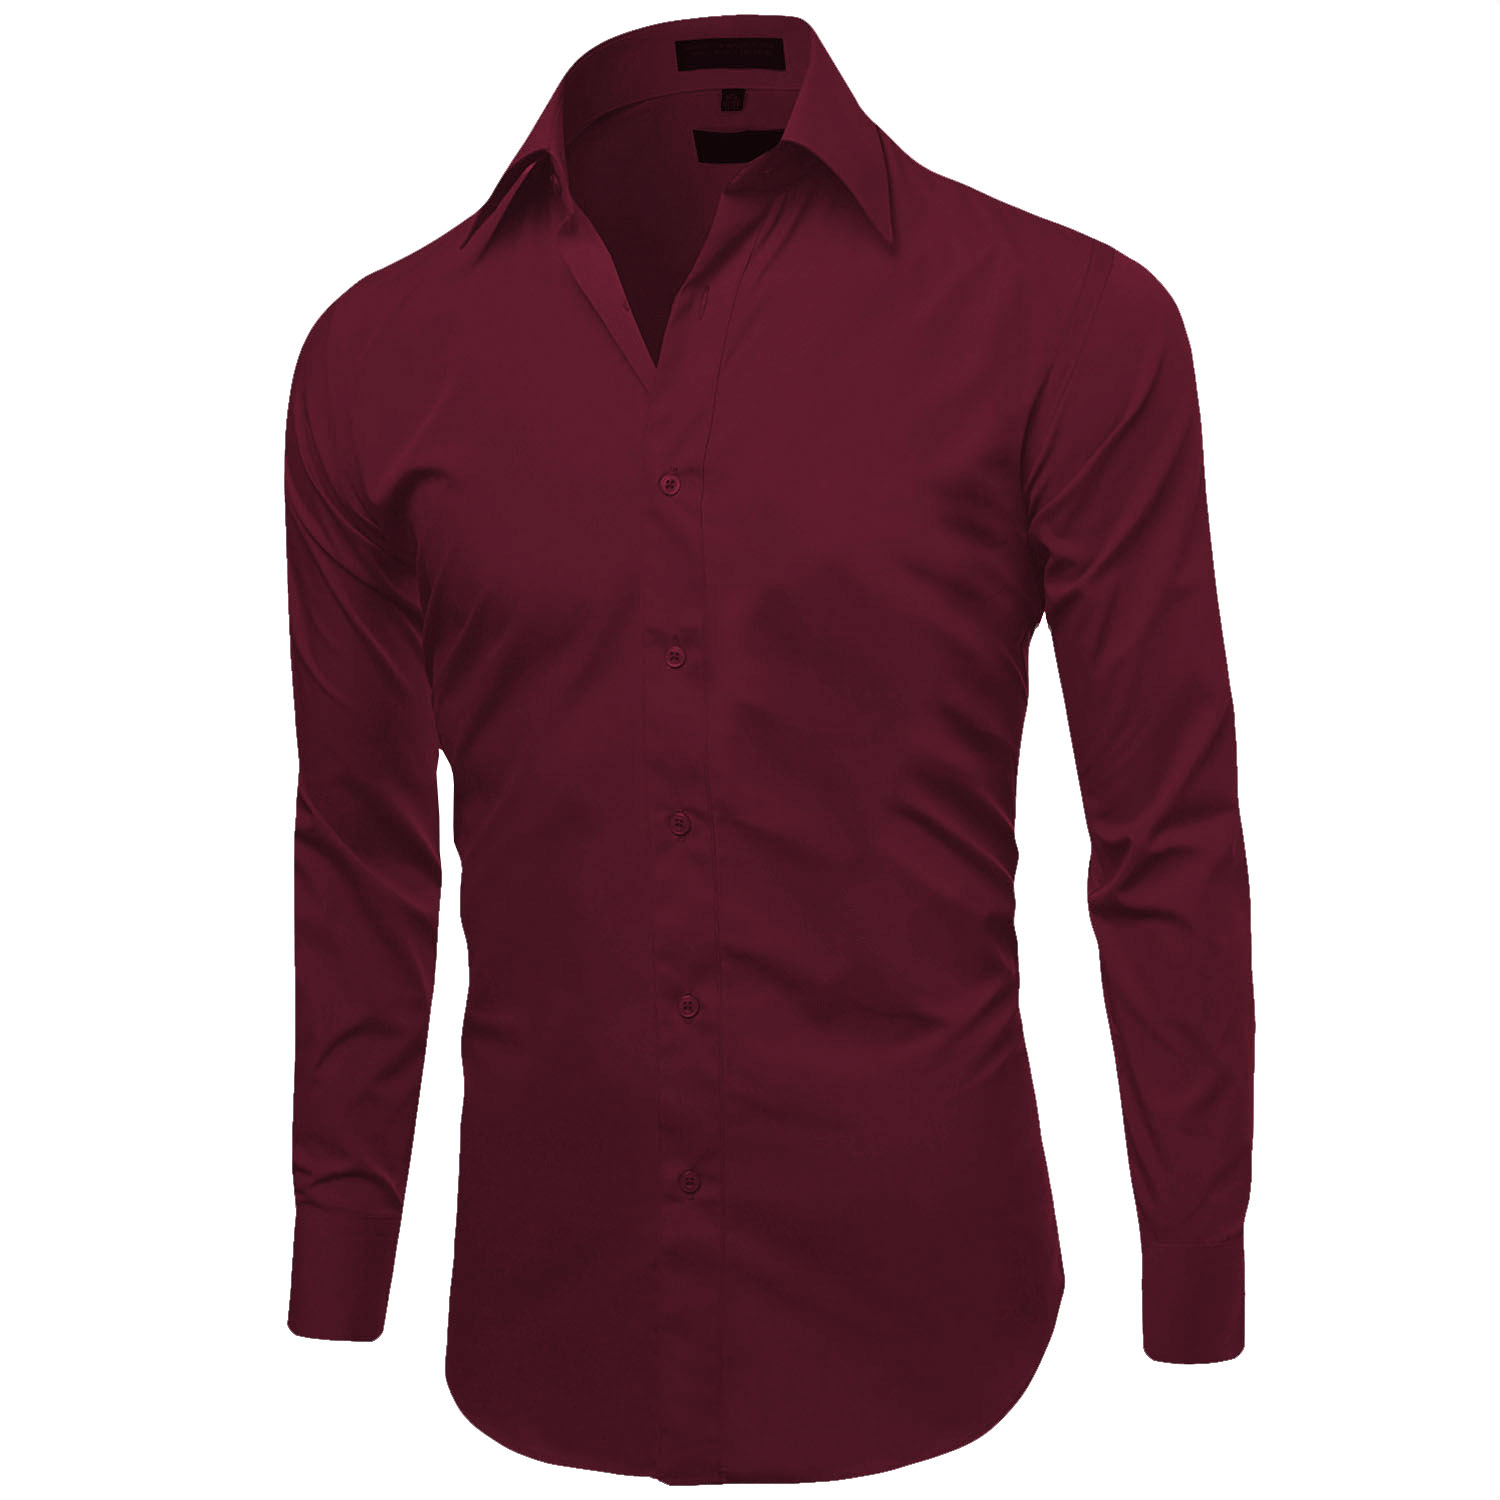 Omega-Italy-Men-039-s-Premium-Slim-Fit-Button-Up-Long-Sleeve-Solid-Color-Dress-Shirt thumbnail 68